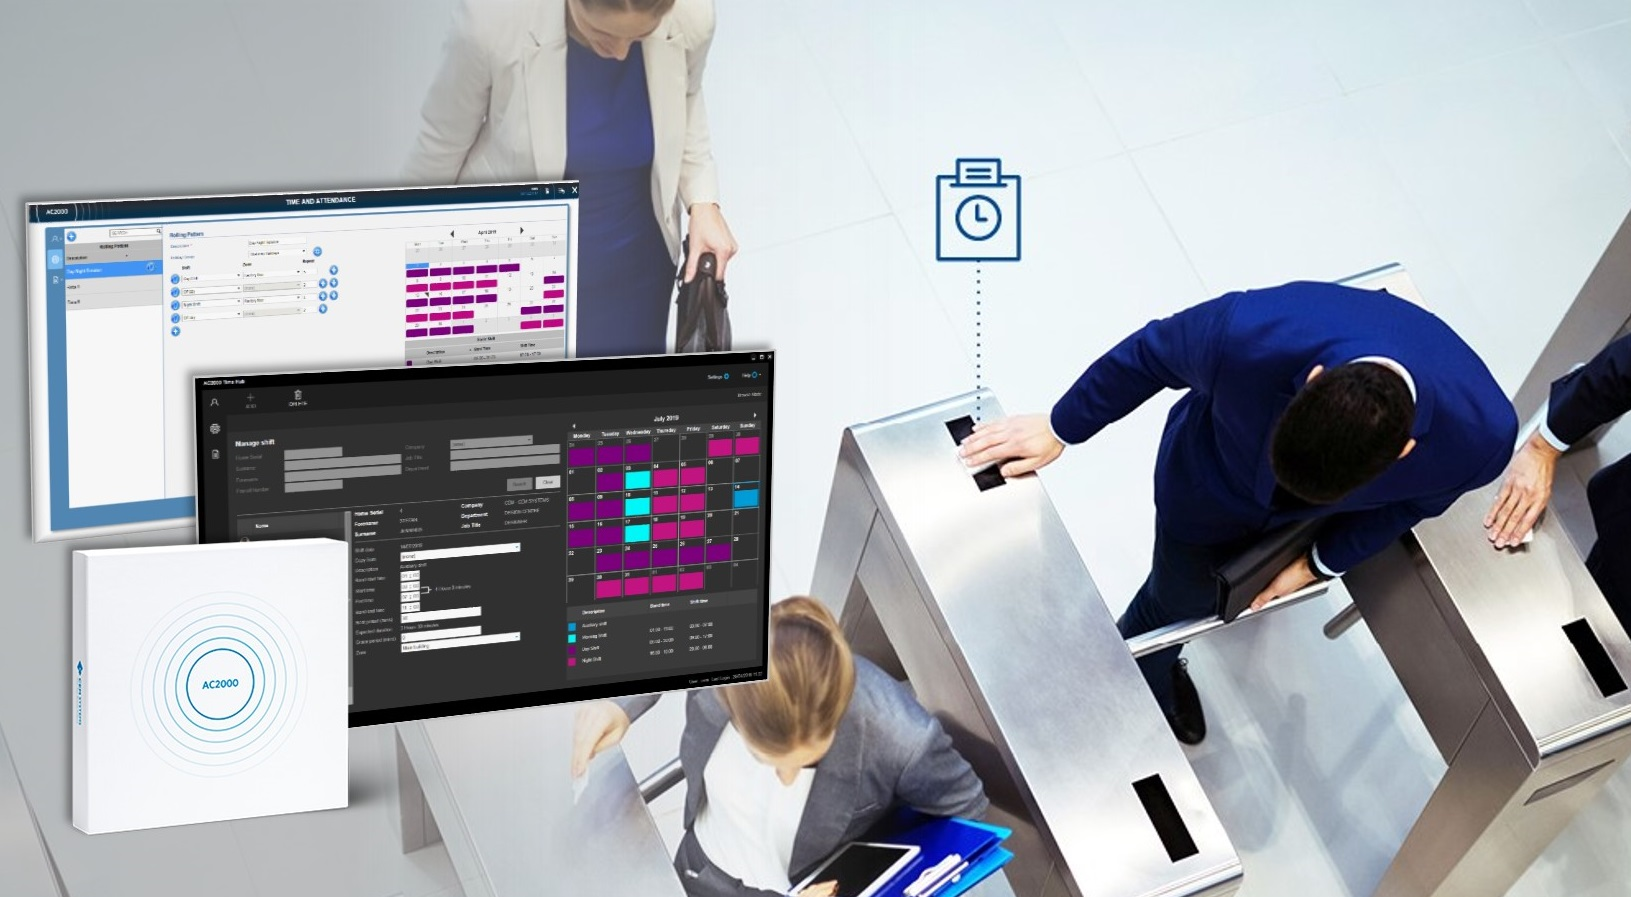 Johnson Controls releases CEM Systems AC2000 v10 2 with